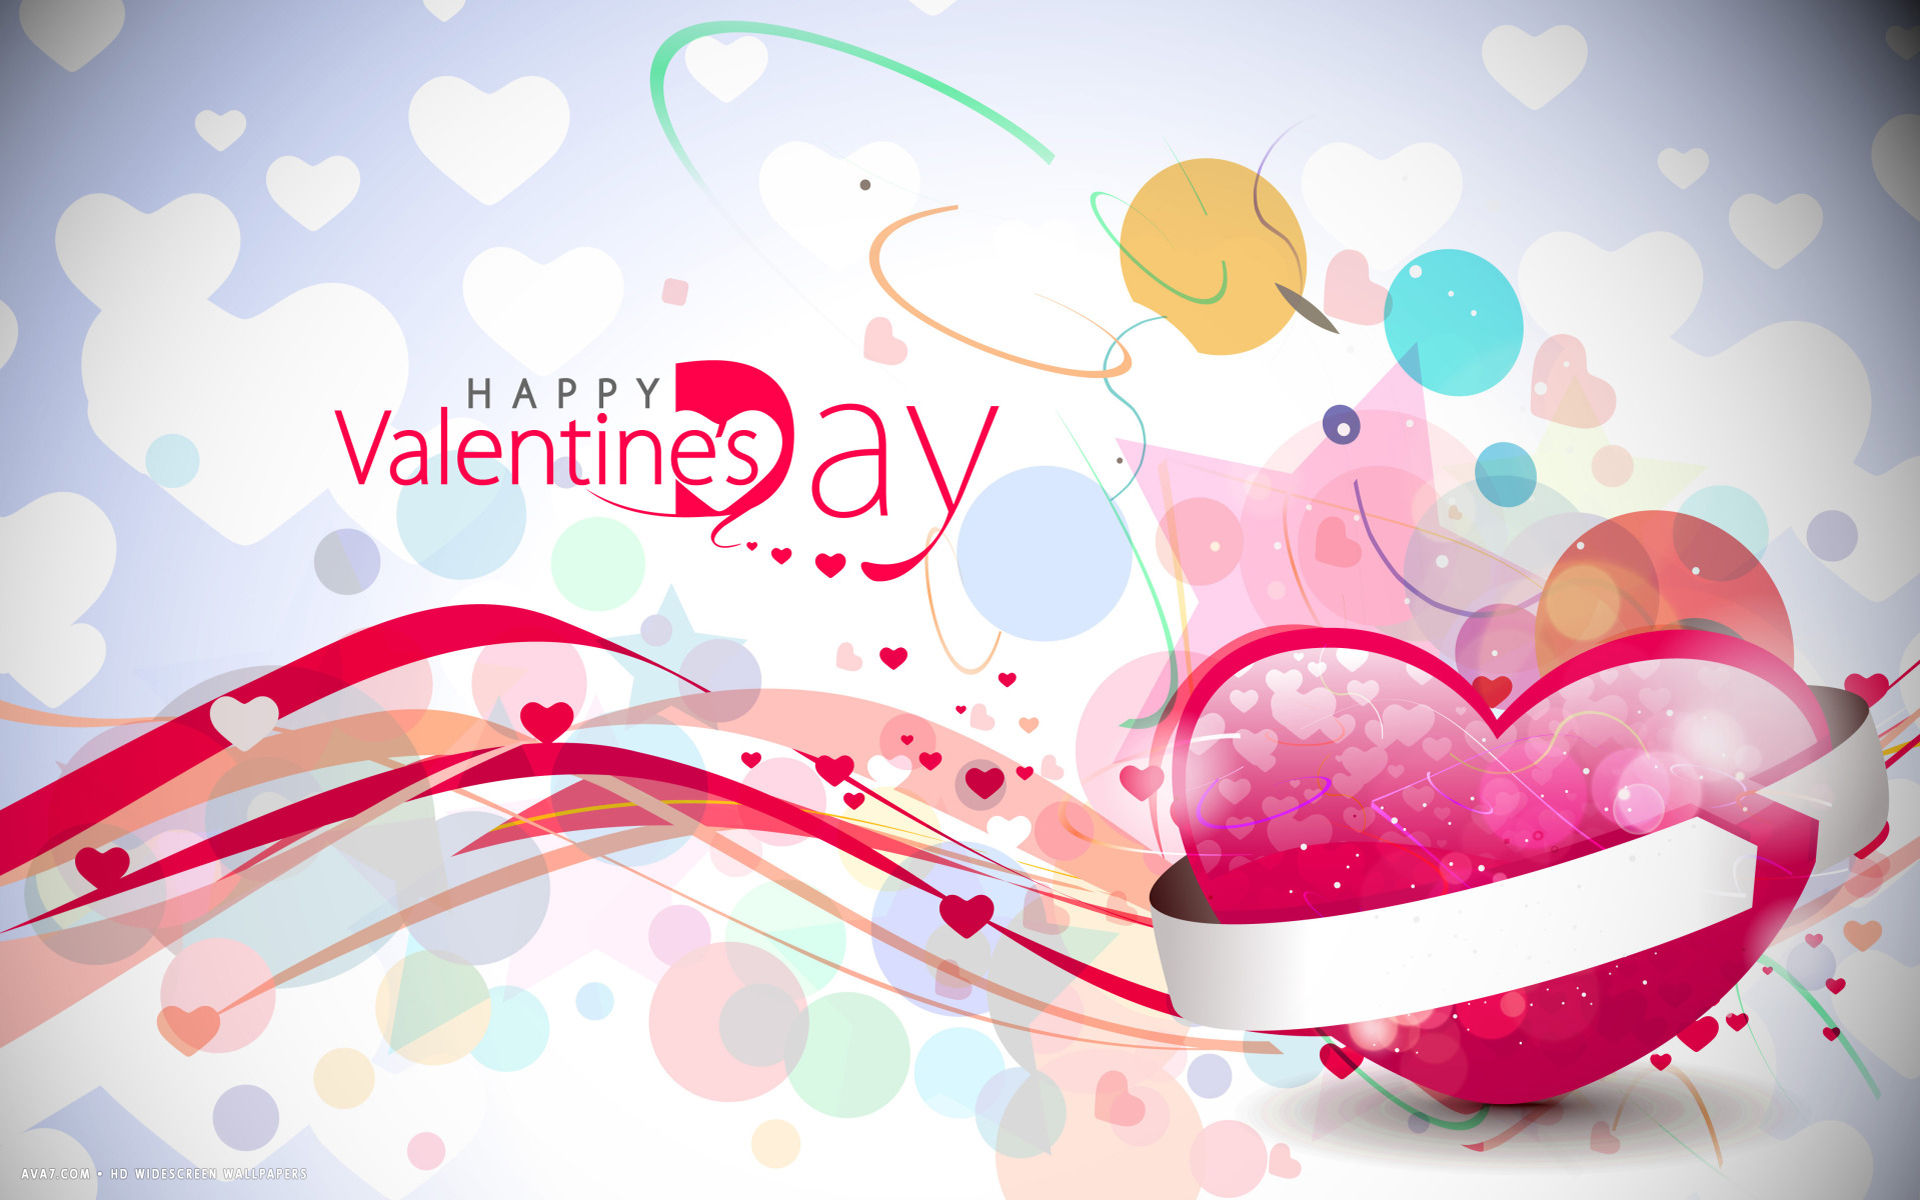 Valentines Day Happy Abstract Hearts Colorful Love Hd Widescreen Wallpaper